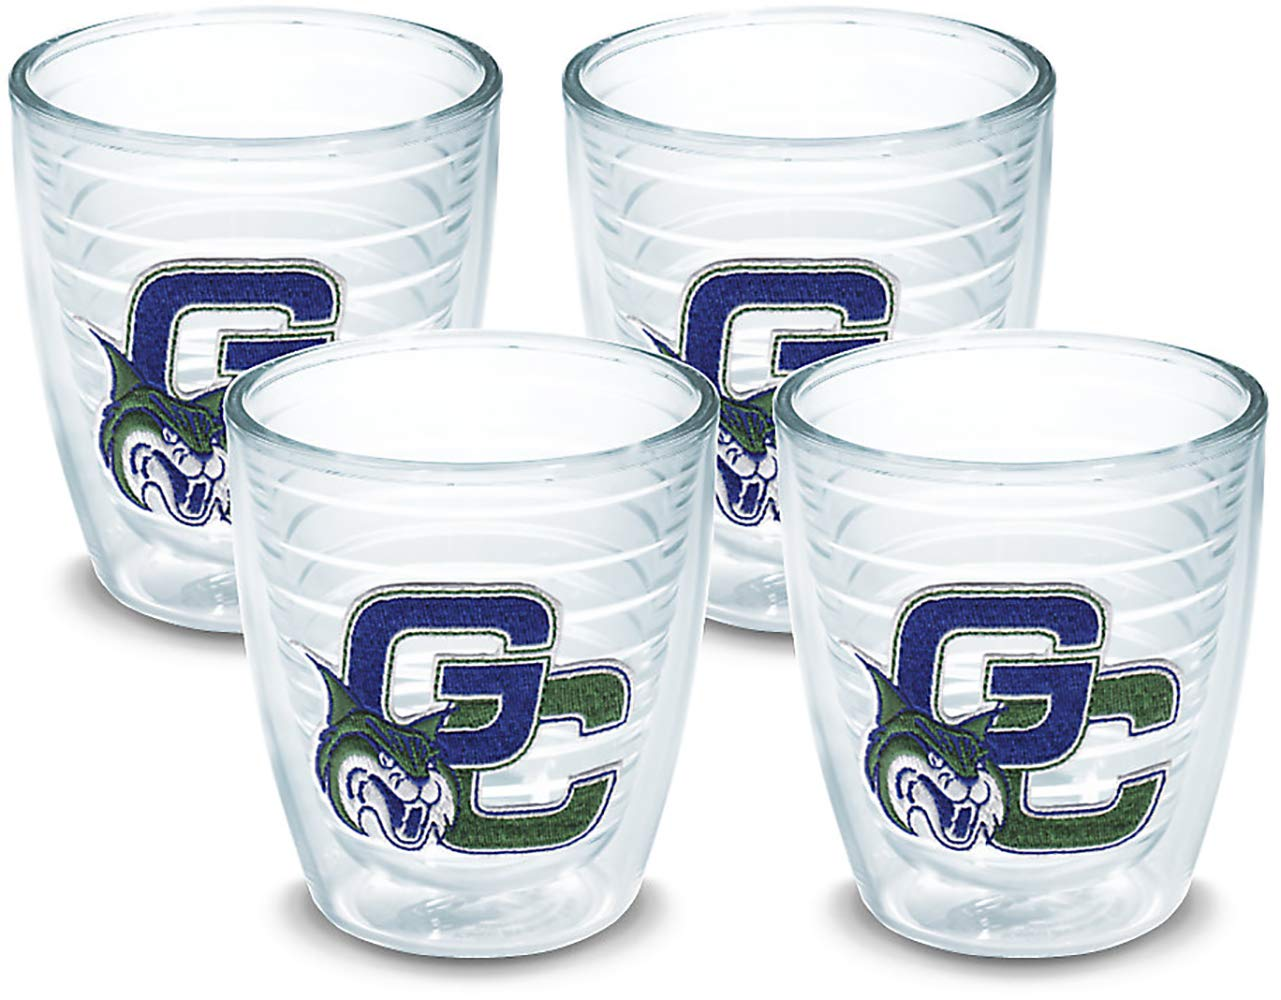 Tervis 1064354 Georgia College Bobcats Logo Tumbler with Emblem 4 Pack 12oz, Clear